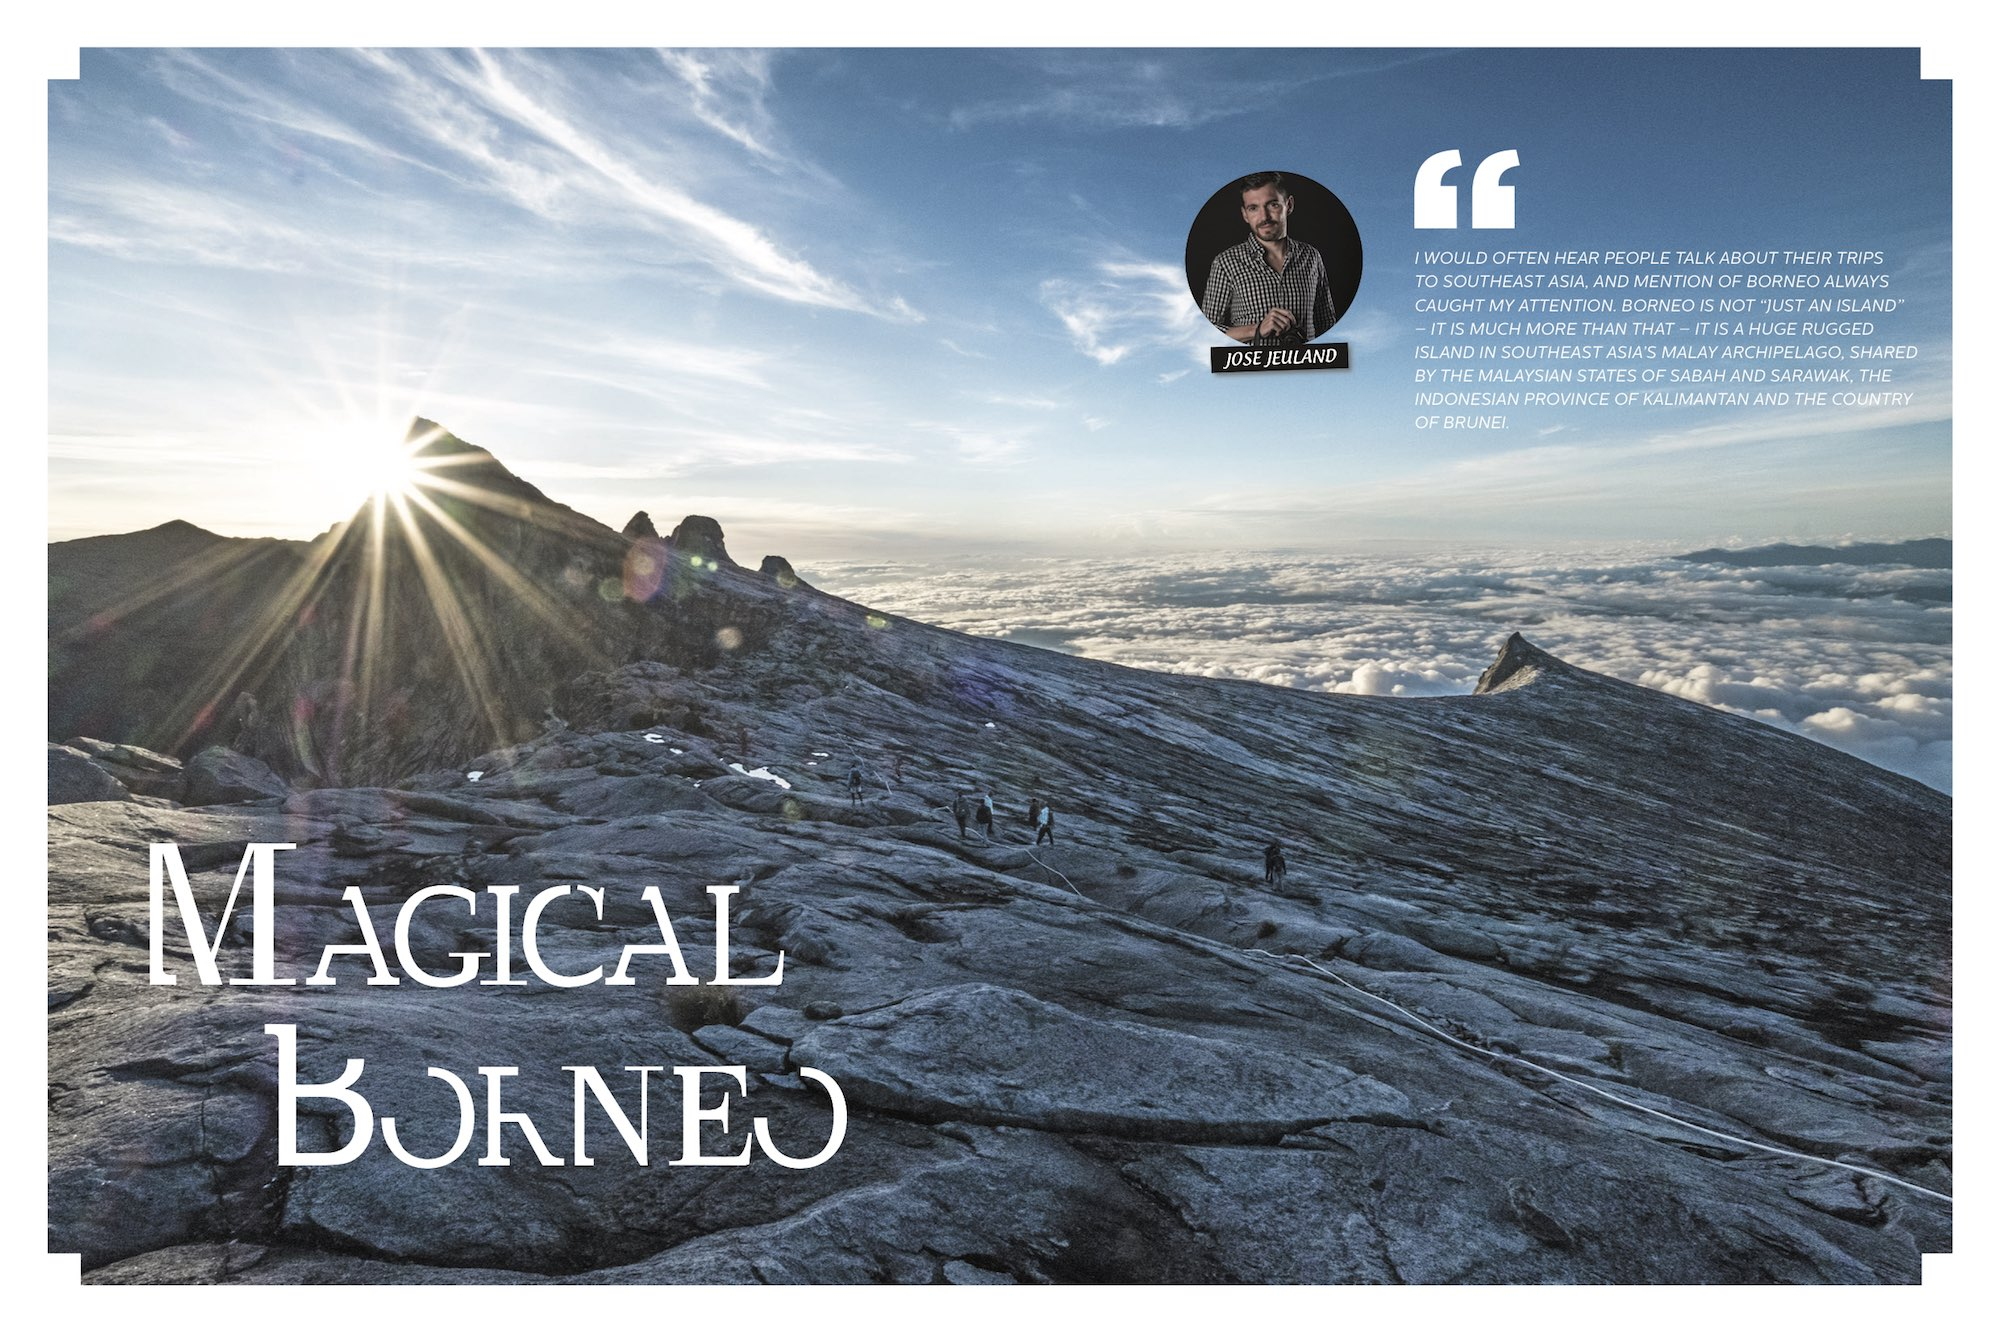 Magical, Borneo, Tropical,l Life, Magazine, Jose, Jeuland, Travel, Malaysia, Kinabalu, Mountains, Photography